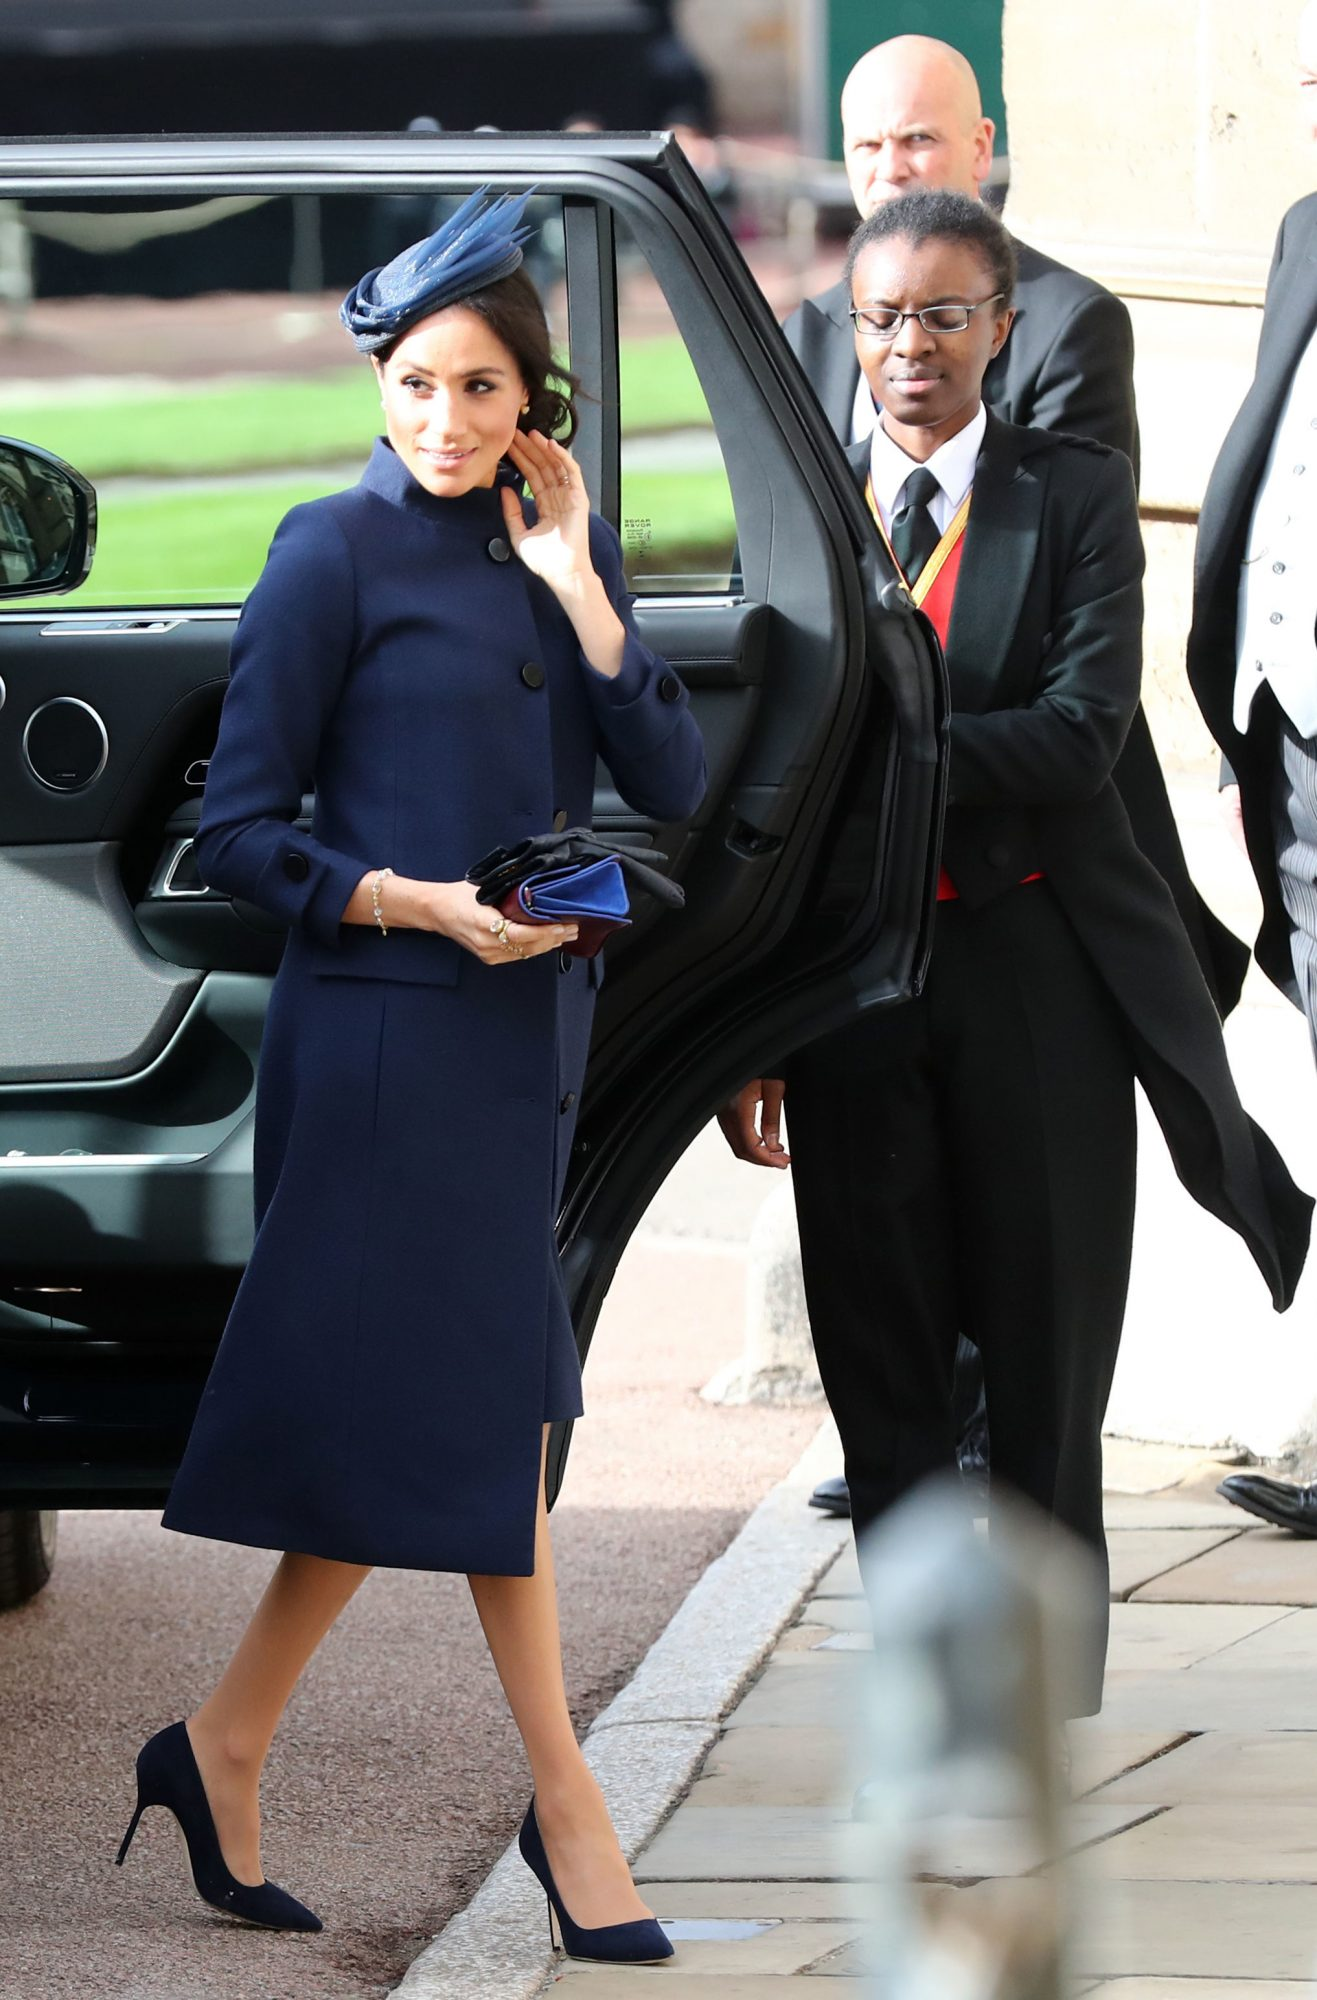 Meghan Markle Attending Princess Eugenie's Wedding